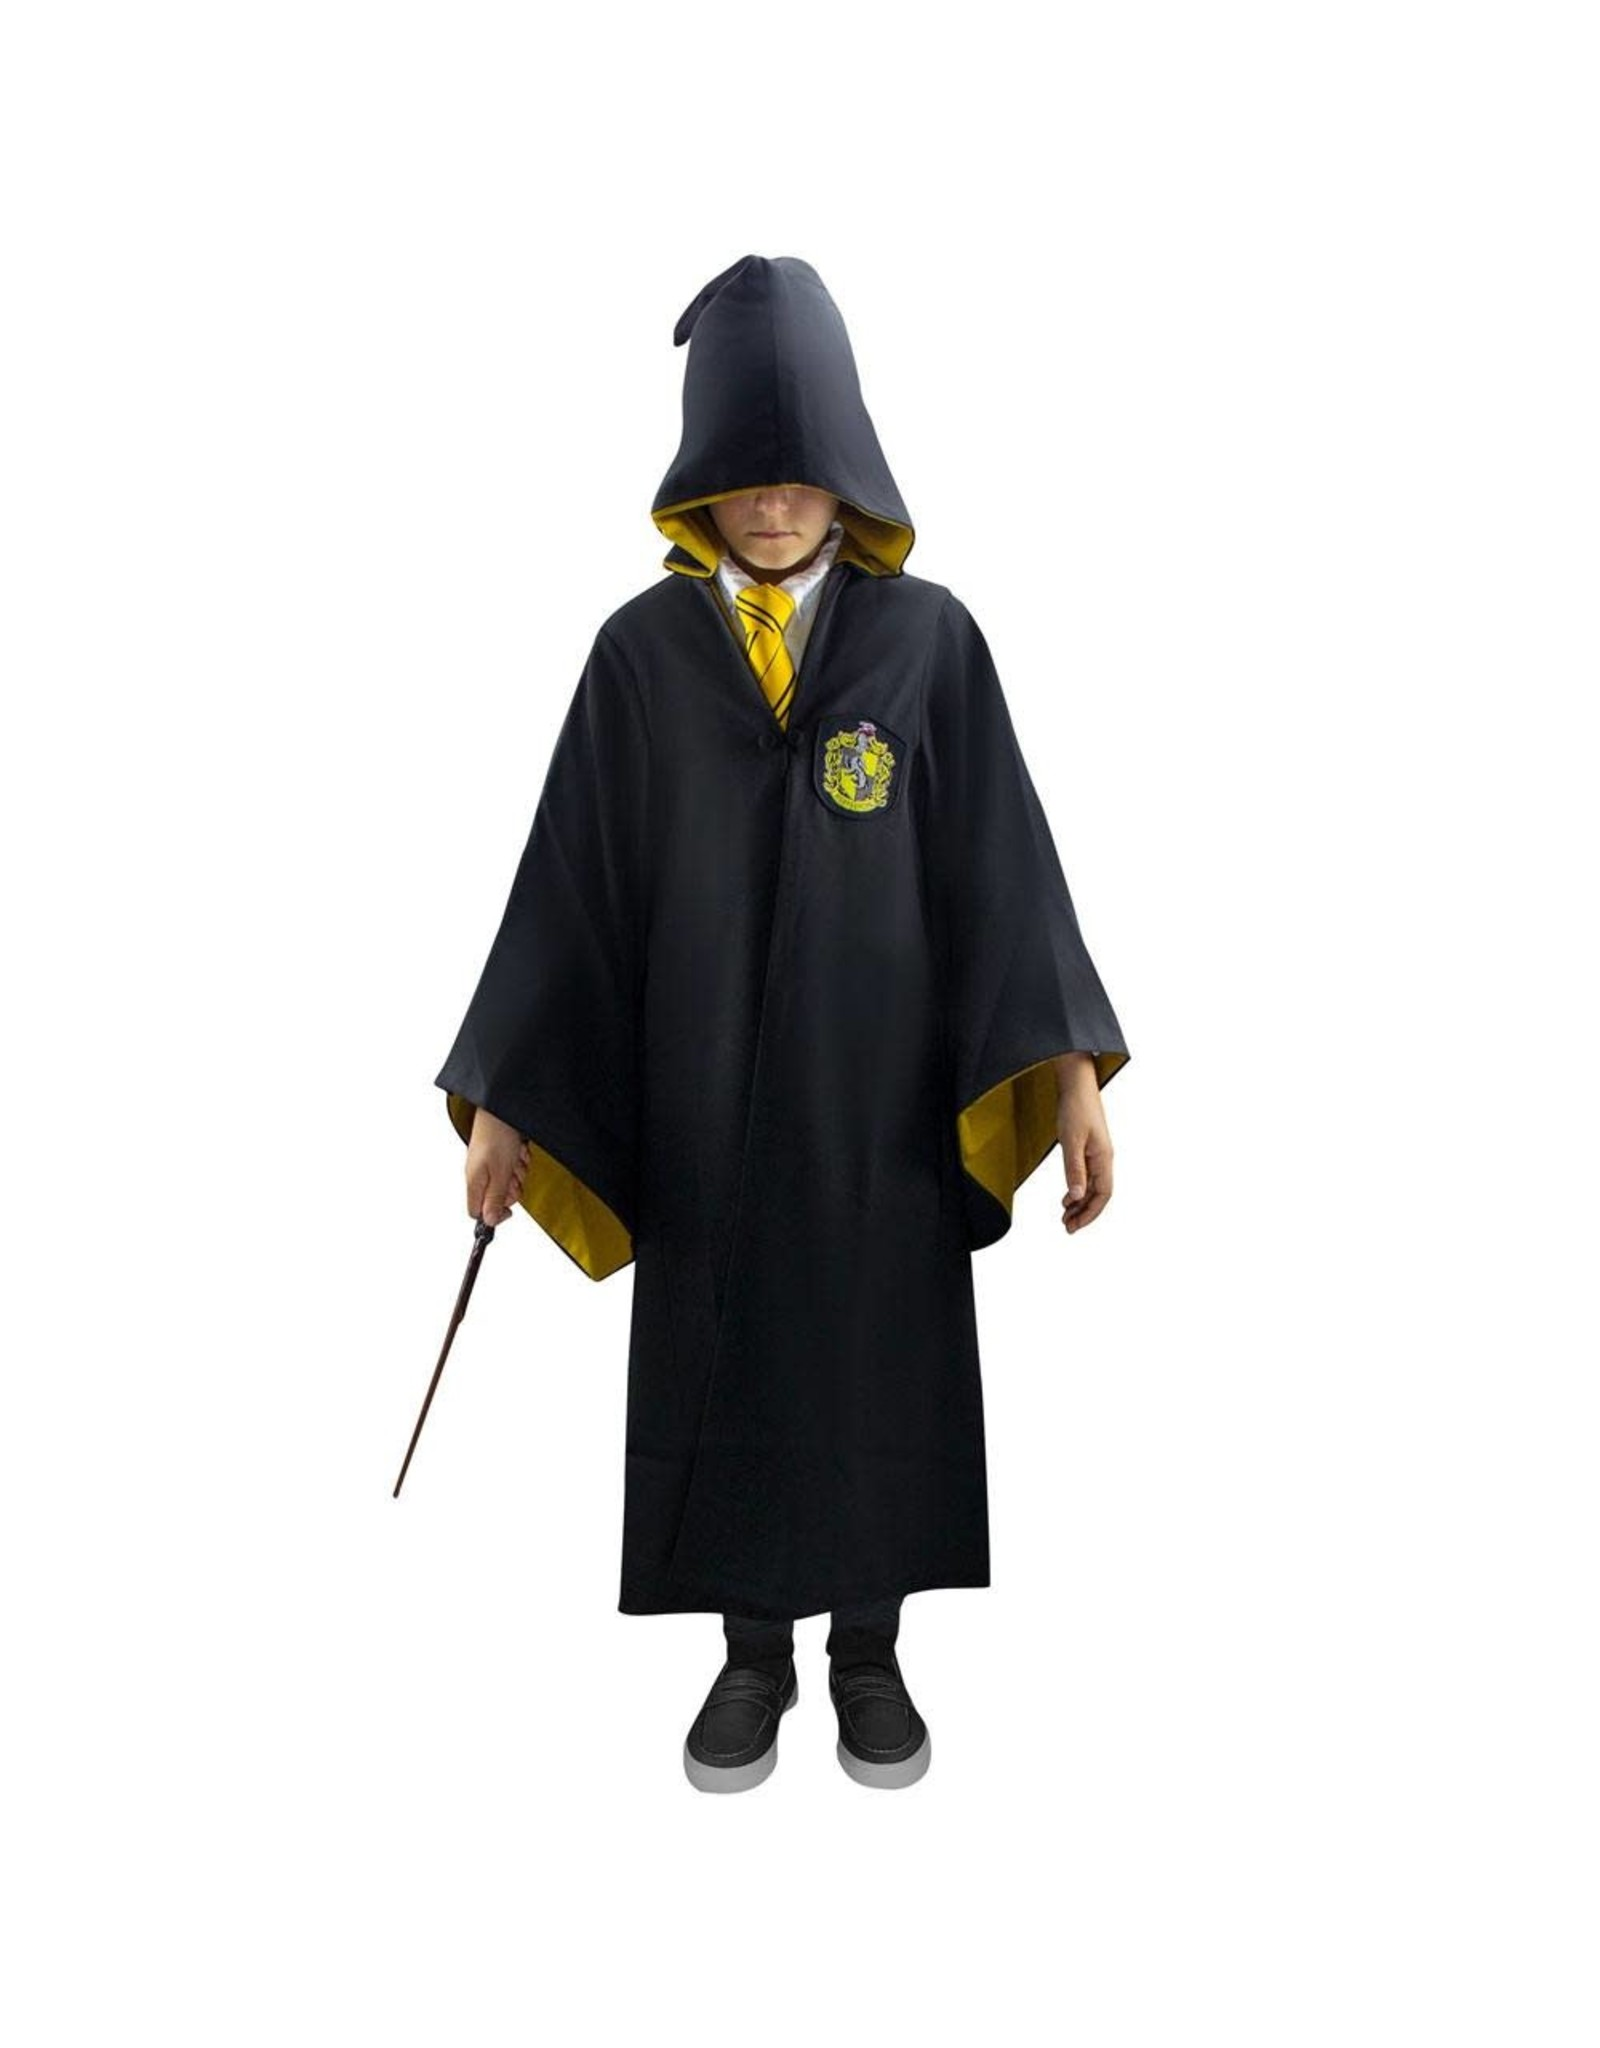 Cinereplicas HARRY POTTER Kids Wizard Robe Cloak - Hufflepuff